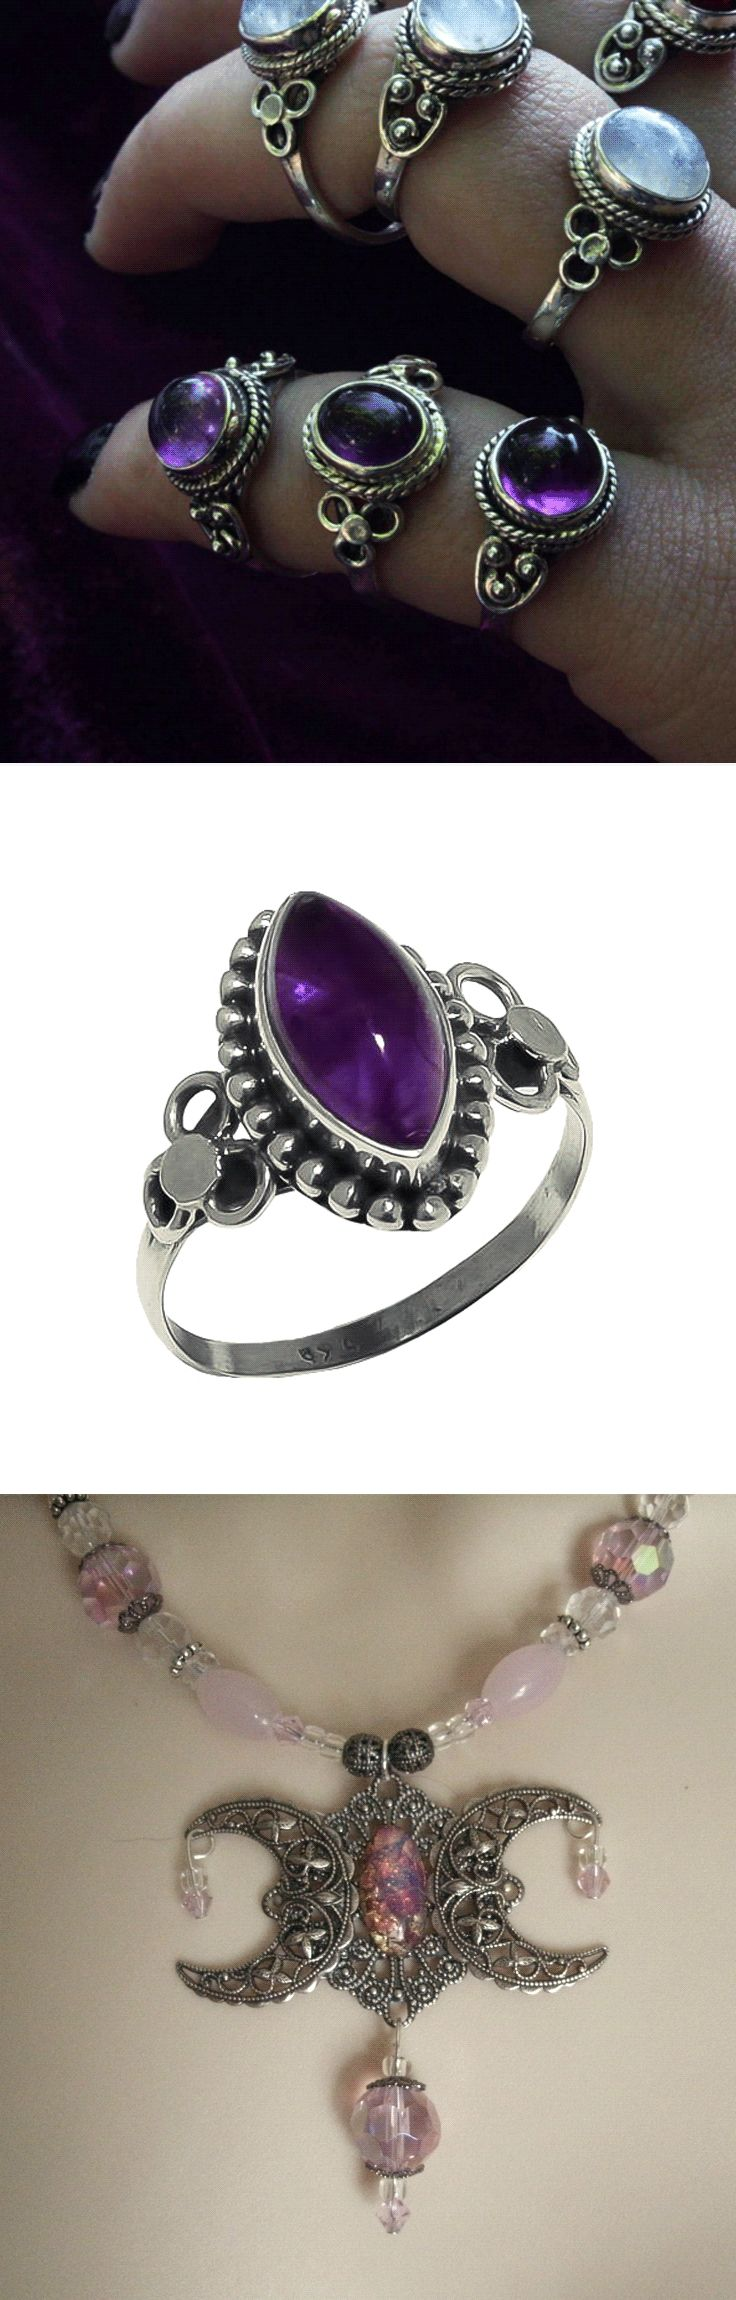 Shop witchy occult jewelry at RebelsMarket.